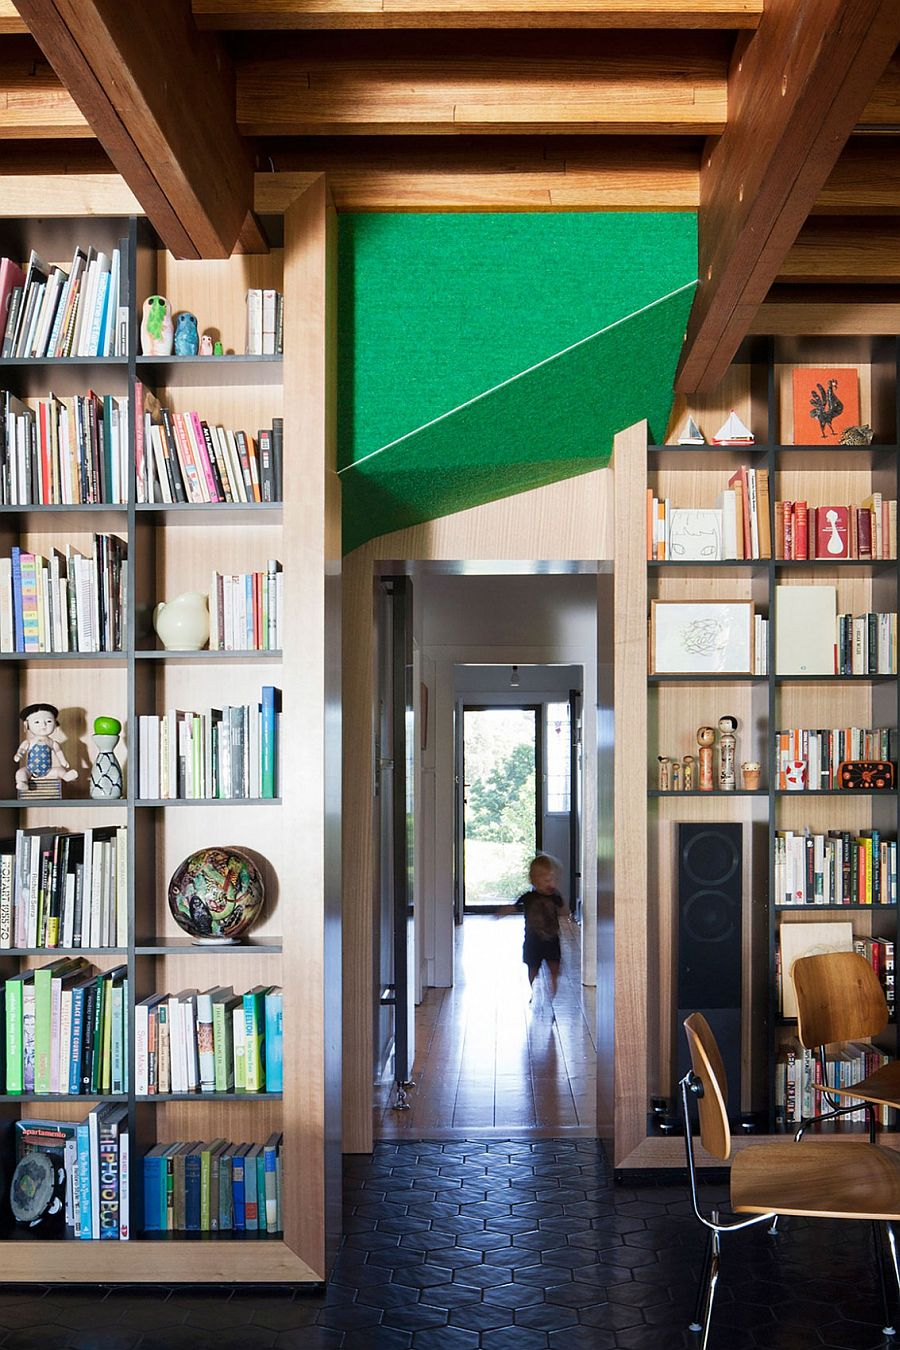 Large bookshelves and wooden walls separate spaces inside the Doll's House